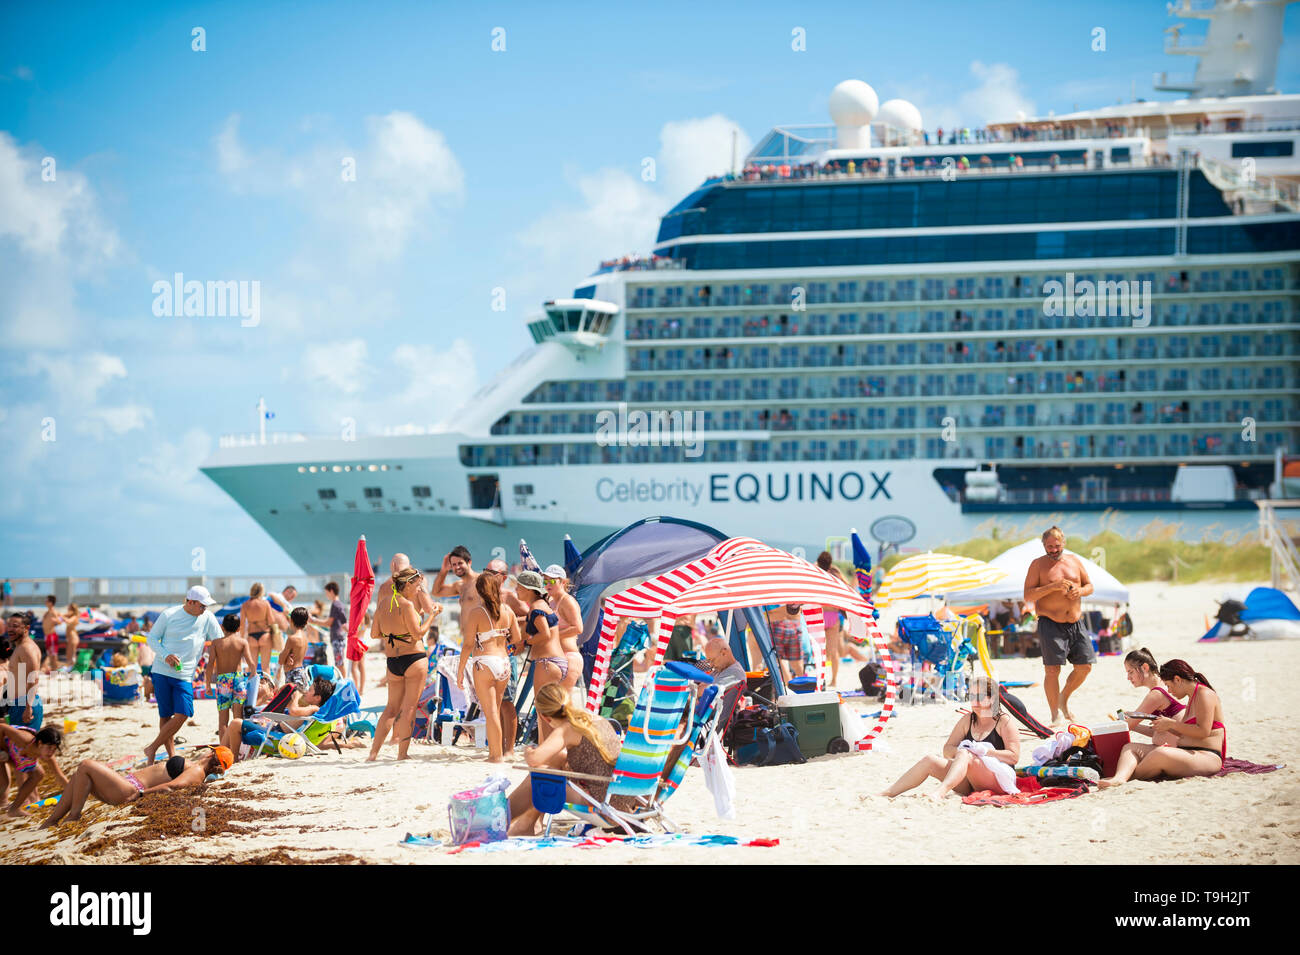 Equinox South Beach >> Miami June 2018 The Celebrity Equinox Cruise Ship Passes